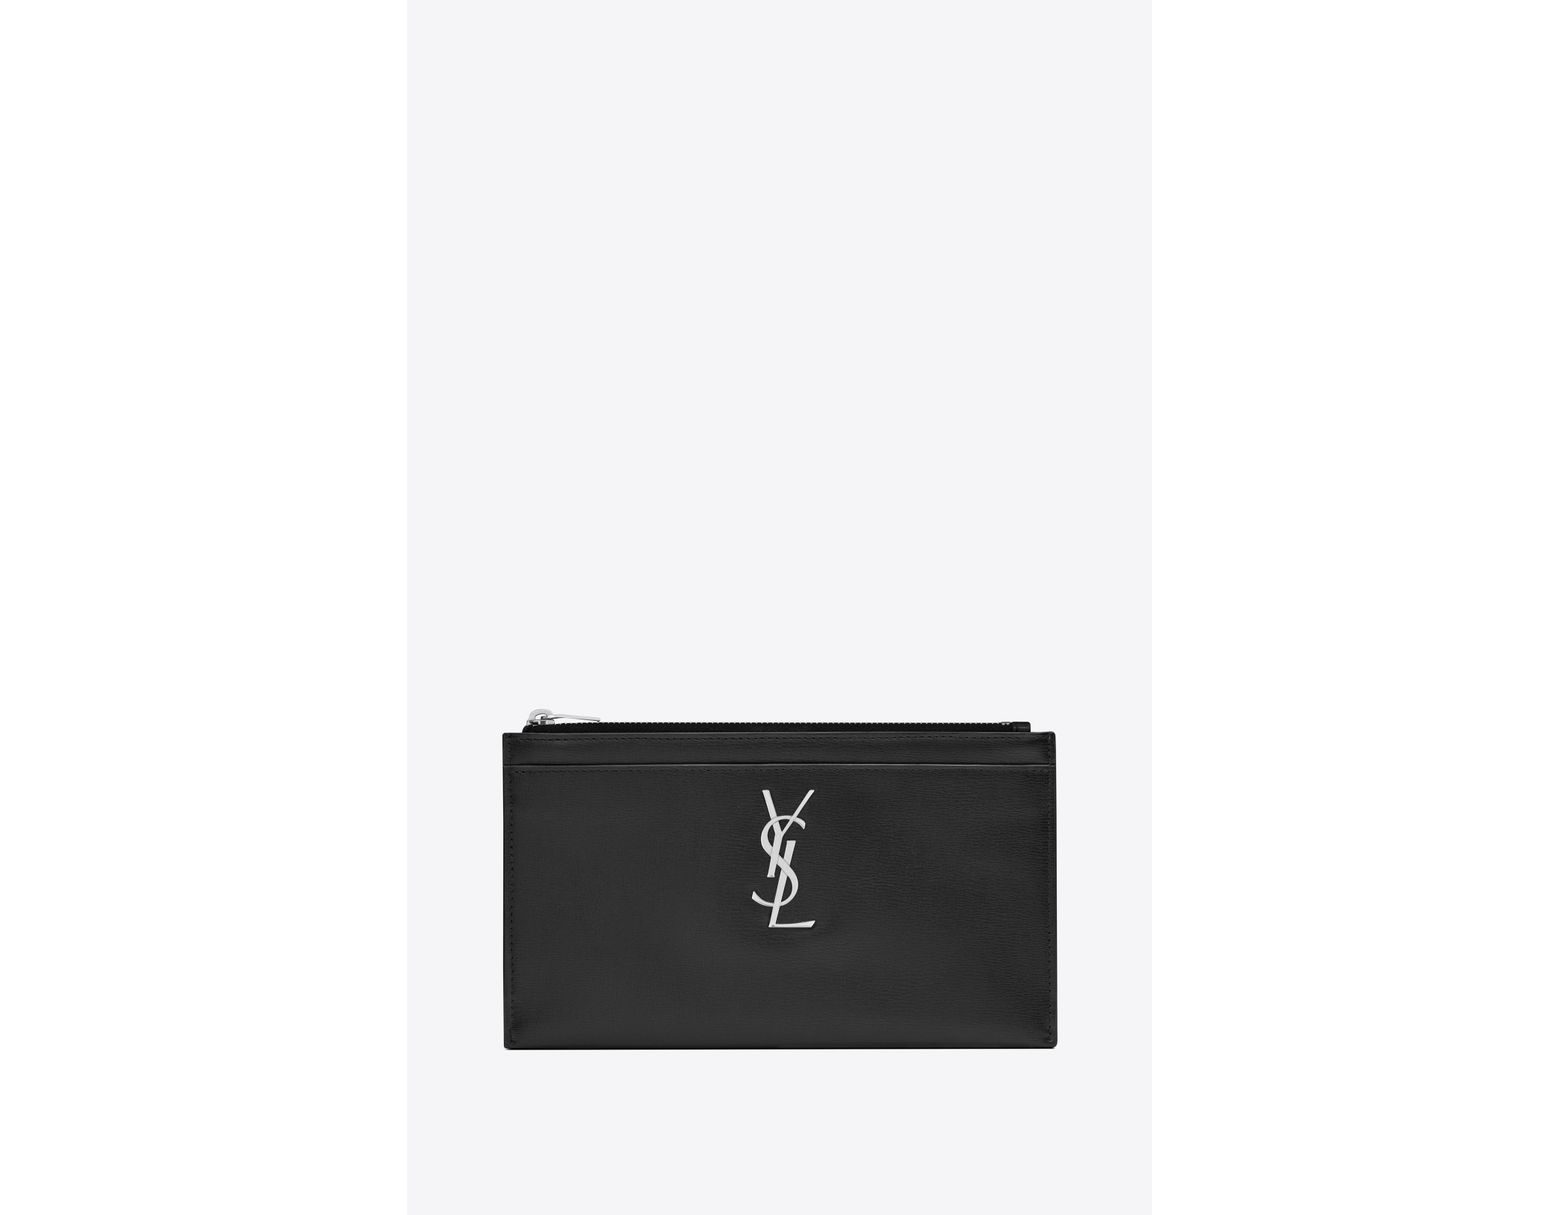 a86e947dc3 Saint Laurent Monogram Bill Pouch In Smooth Leather in Black - Lyst